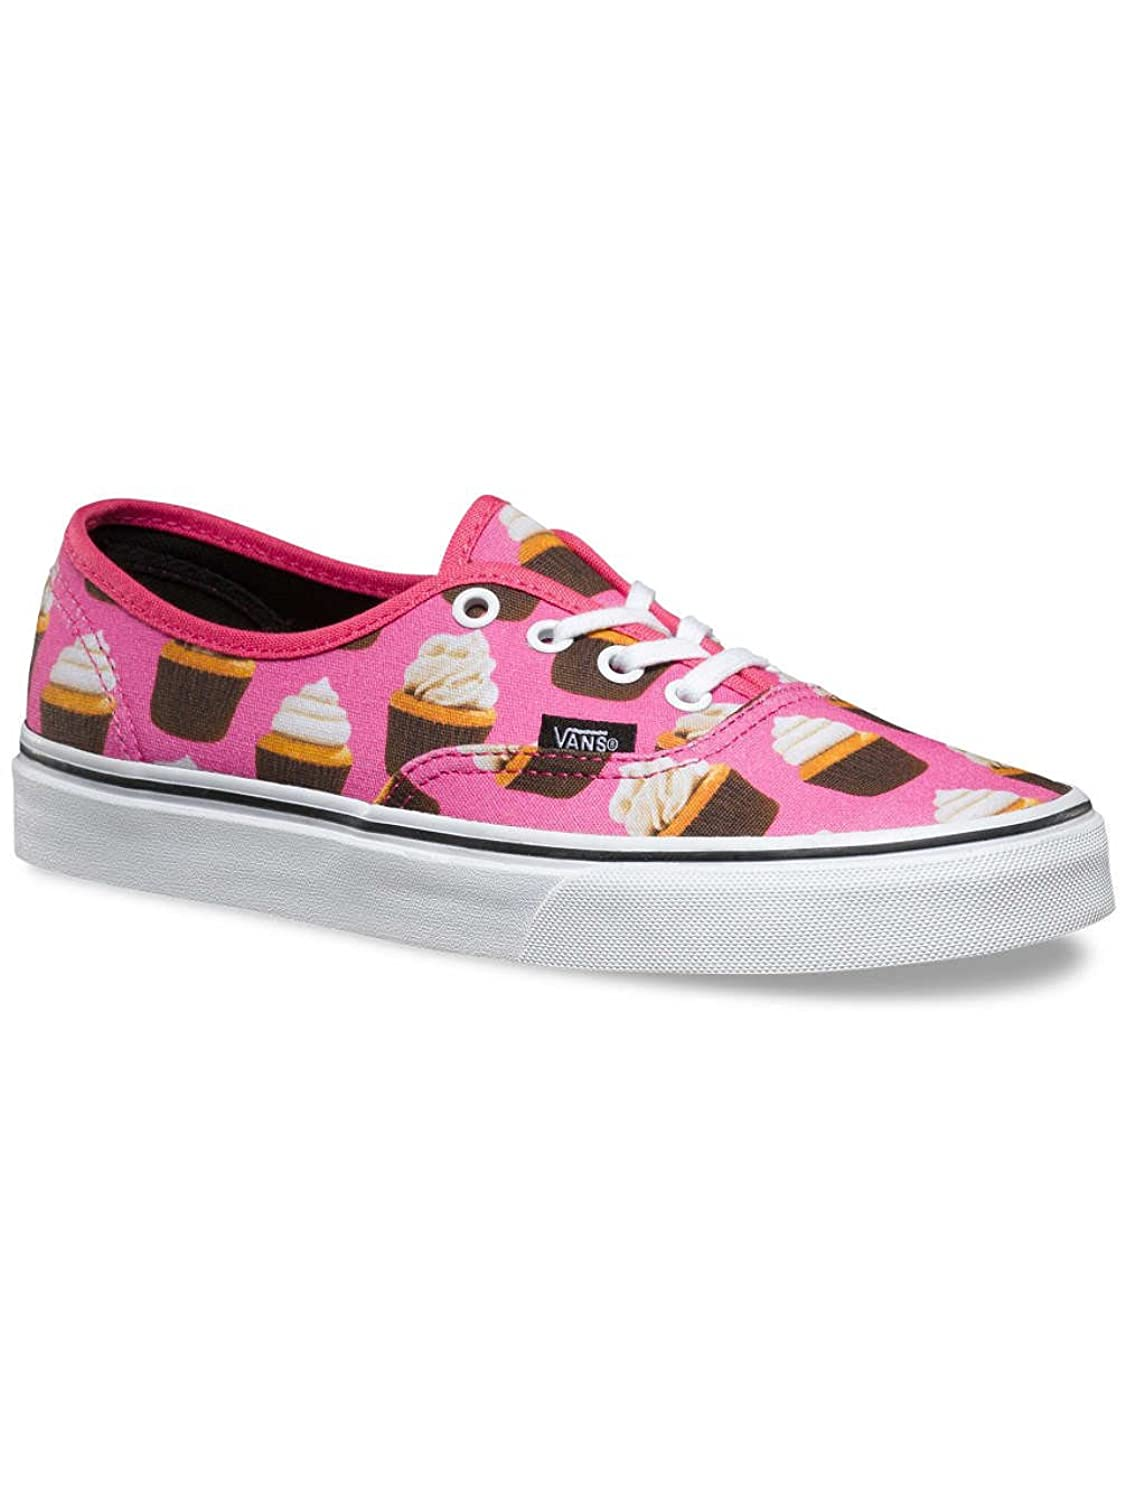 Vans Women's Authentic (Late Night) Hot Pink Cupcakes